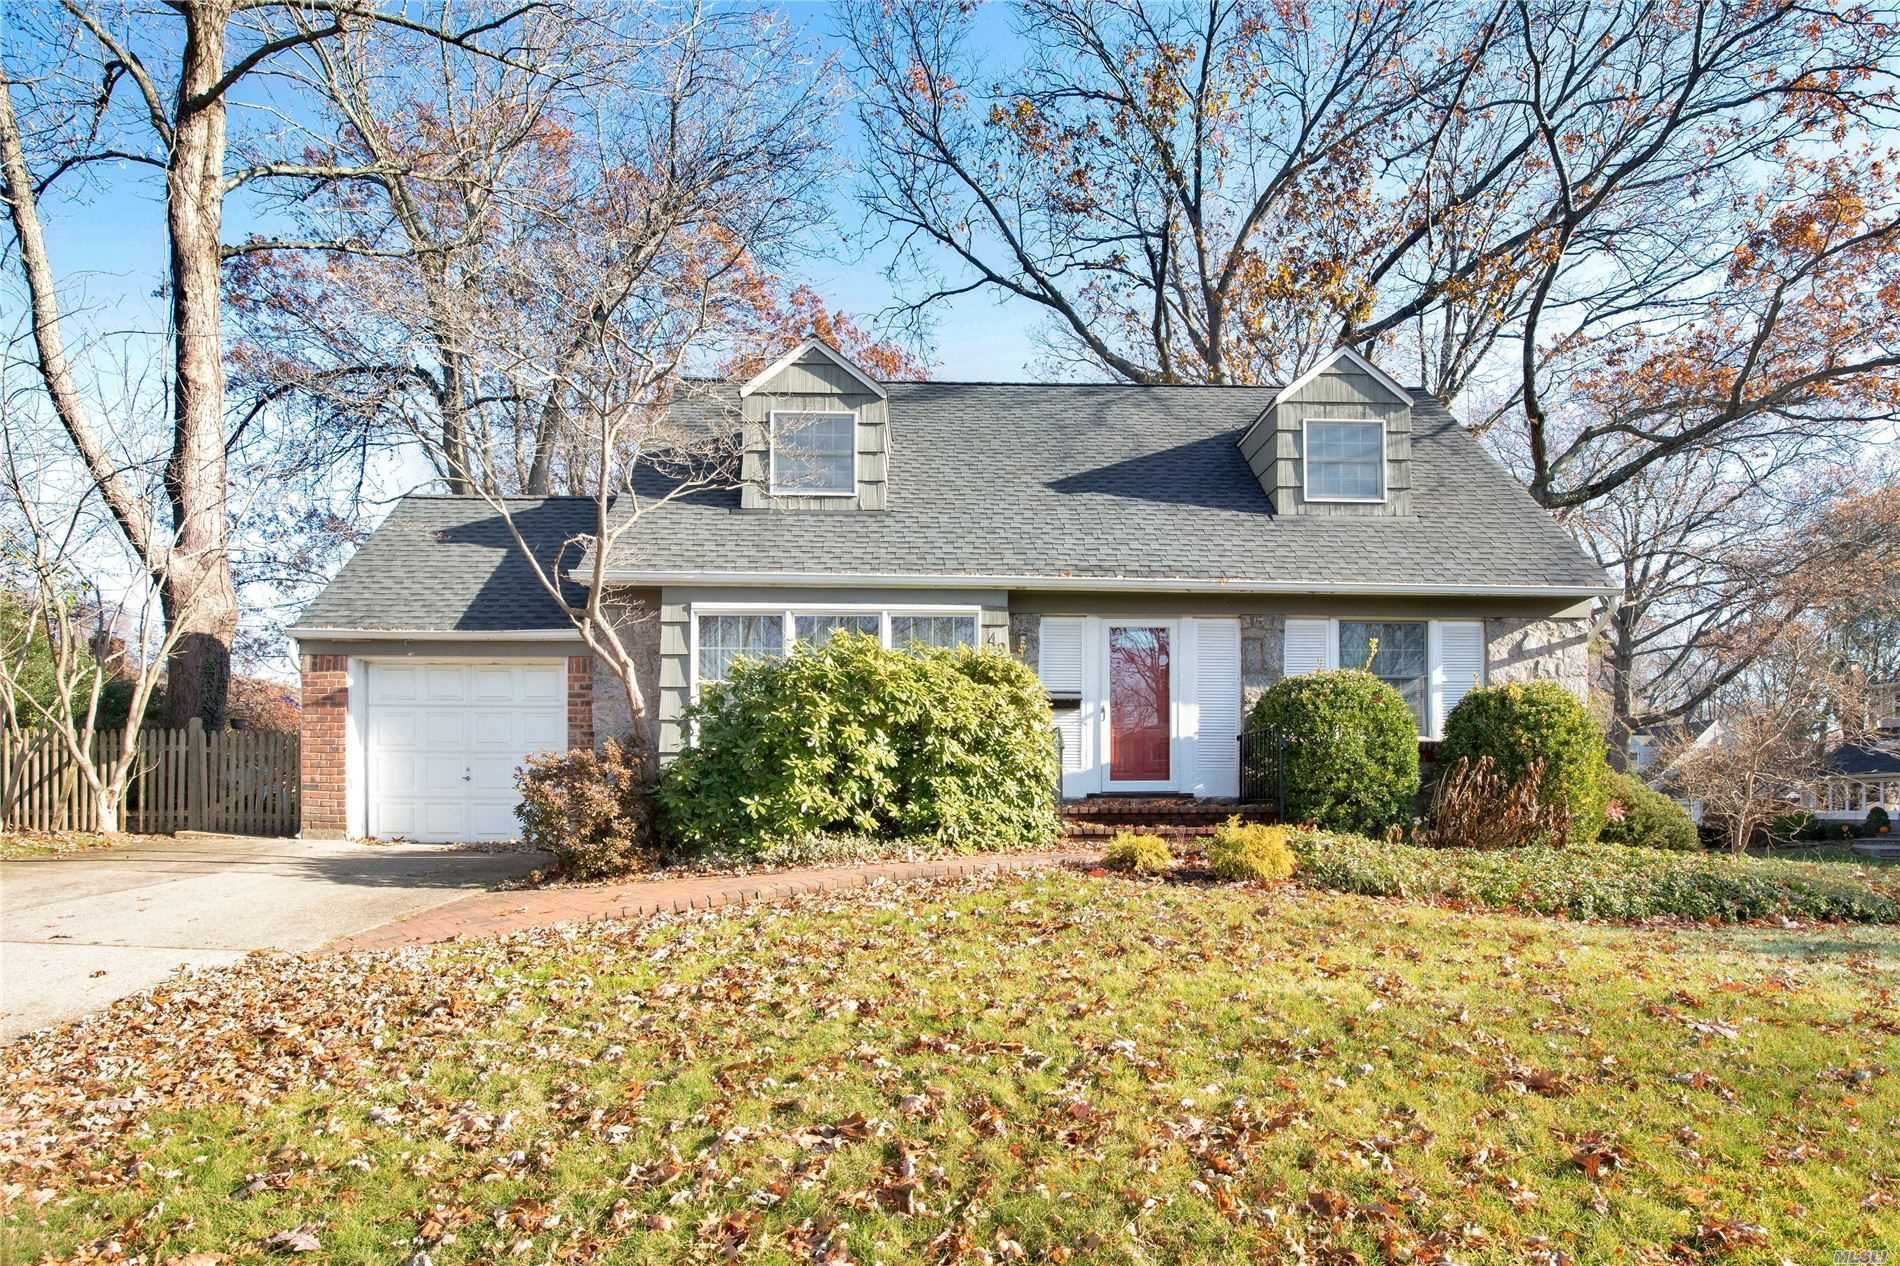 49 Simpson Dr, Old Bethpage, NY 11804 - MLS#: 3183817